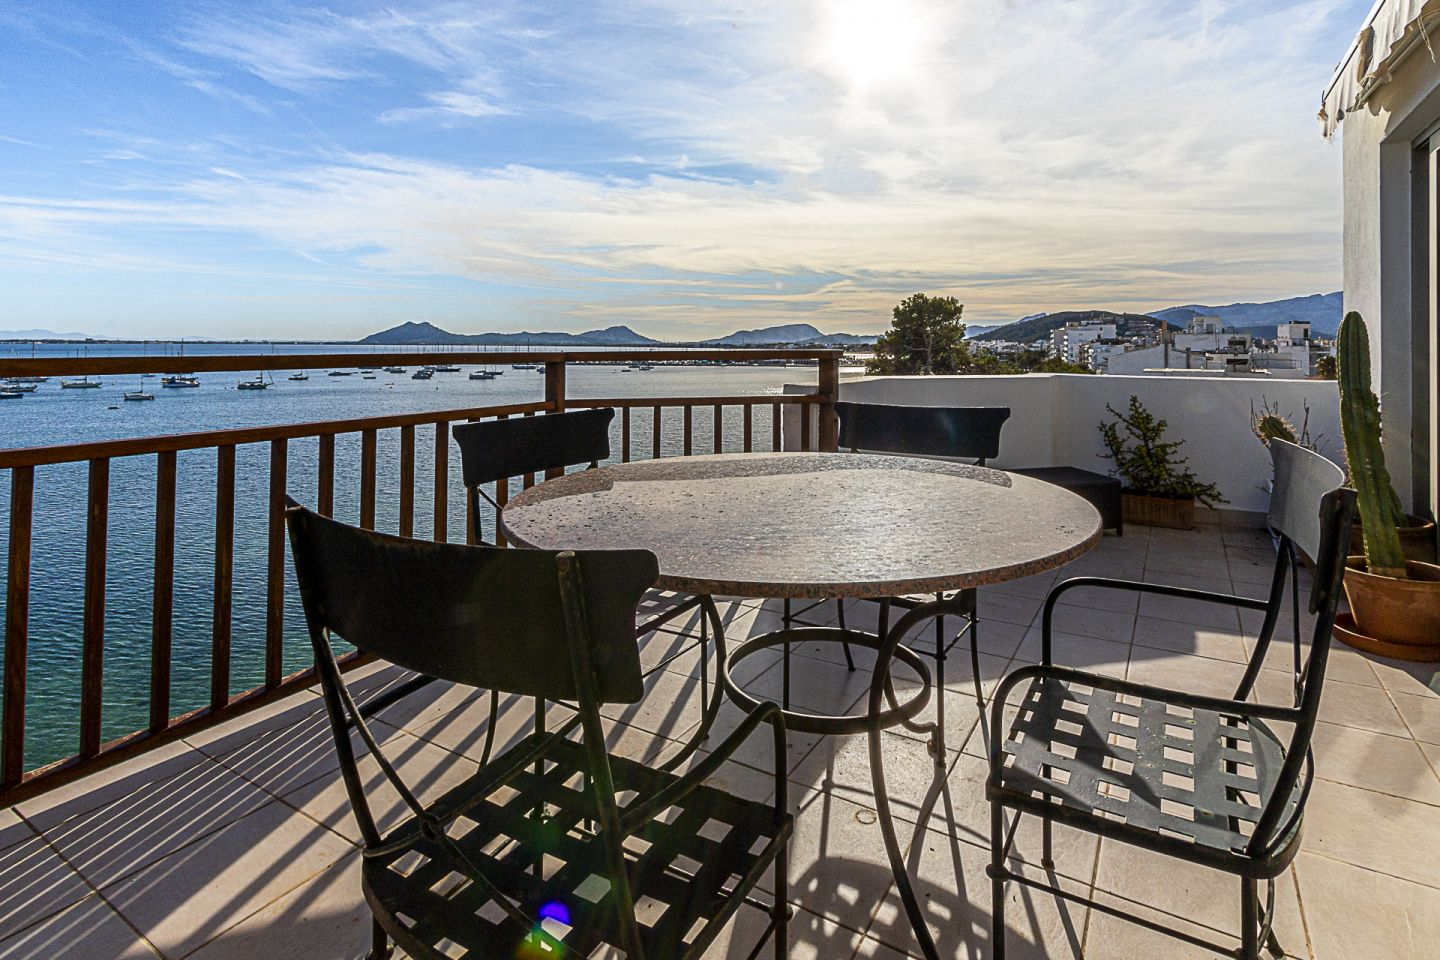 4 Bed Penthouse for sale in PUERTO POLLENSA 19